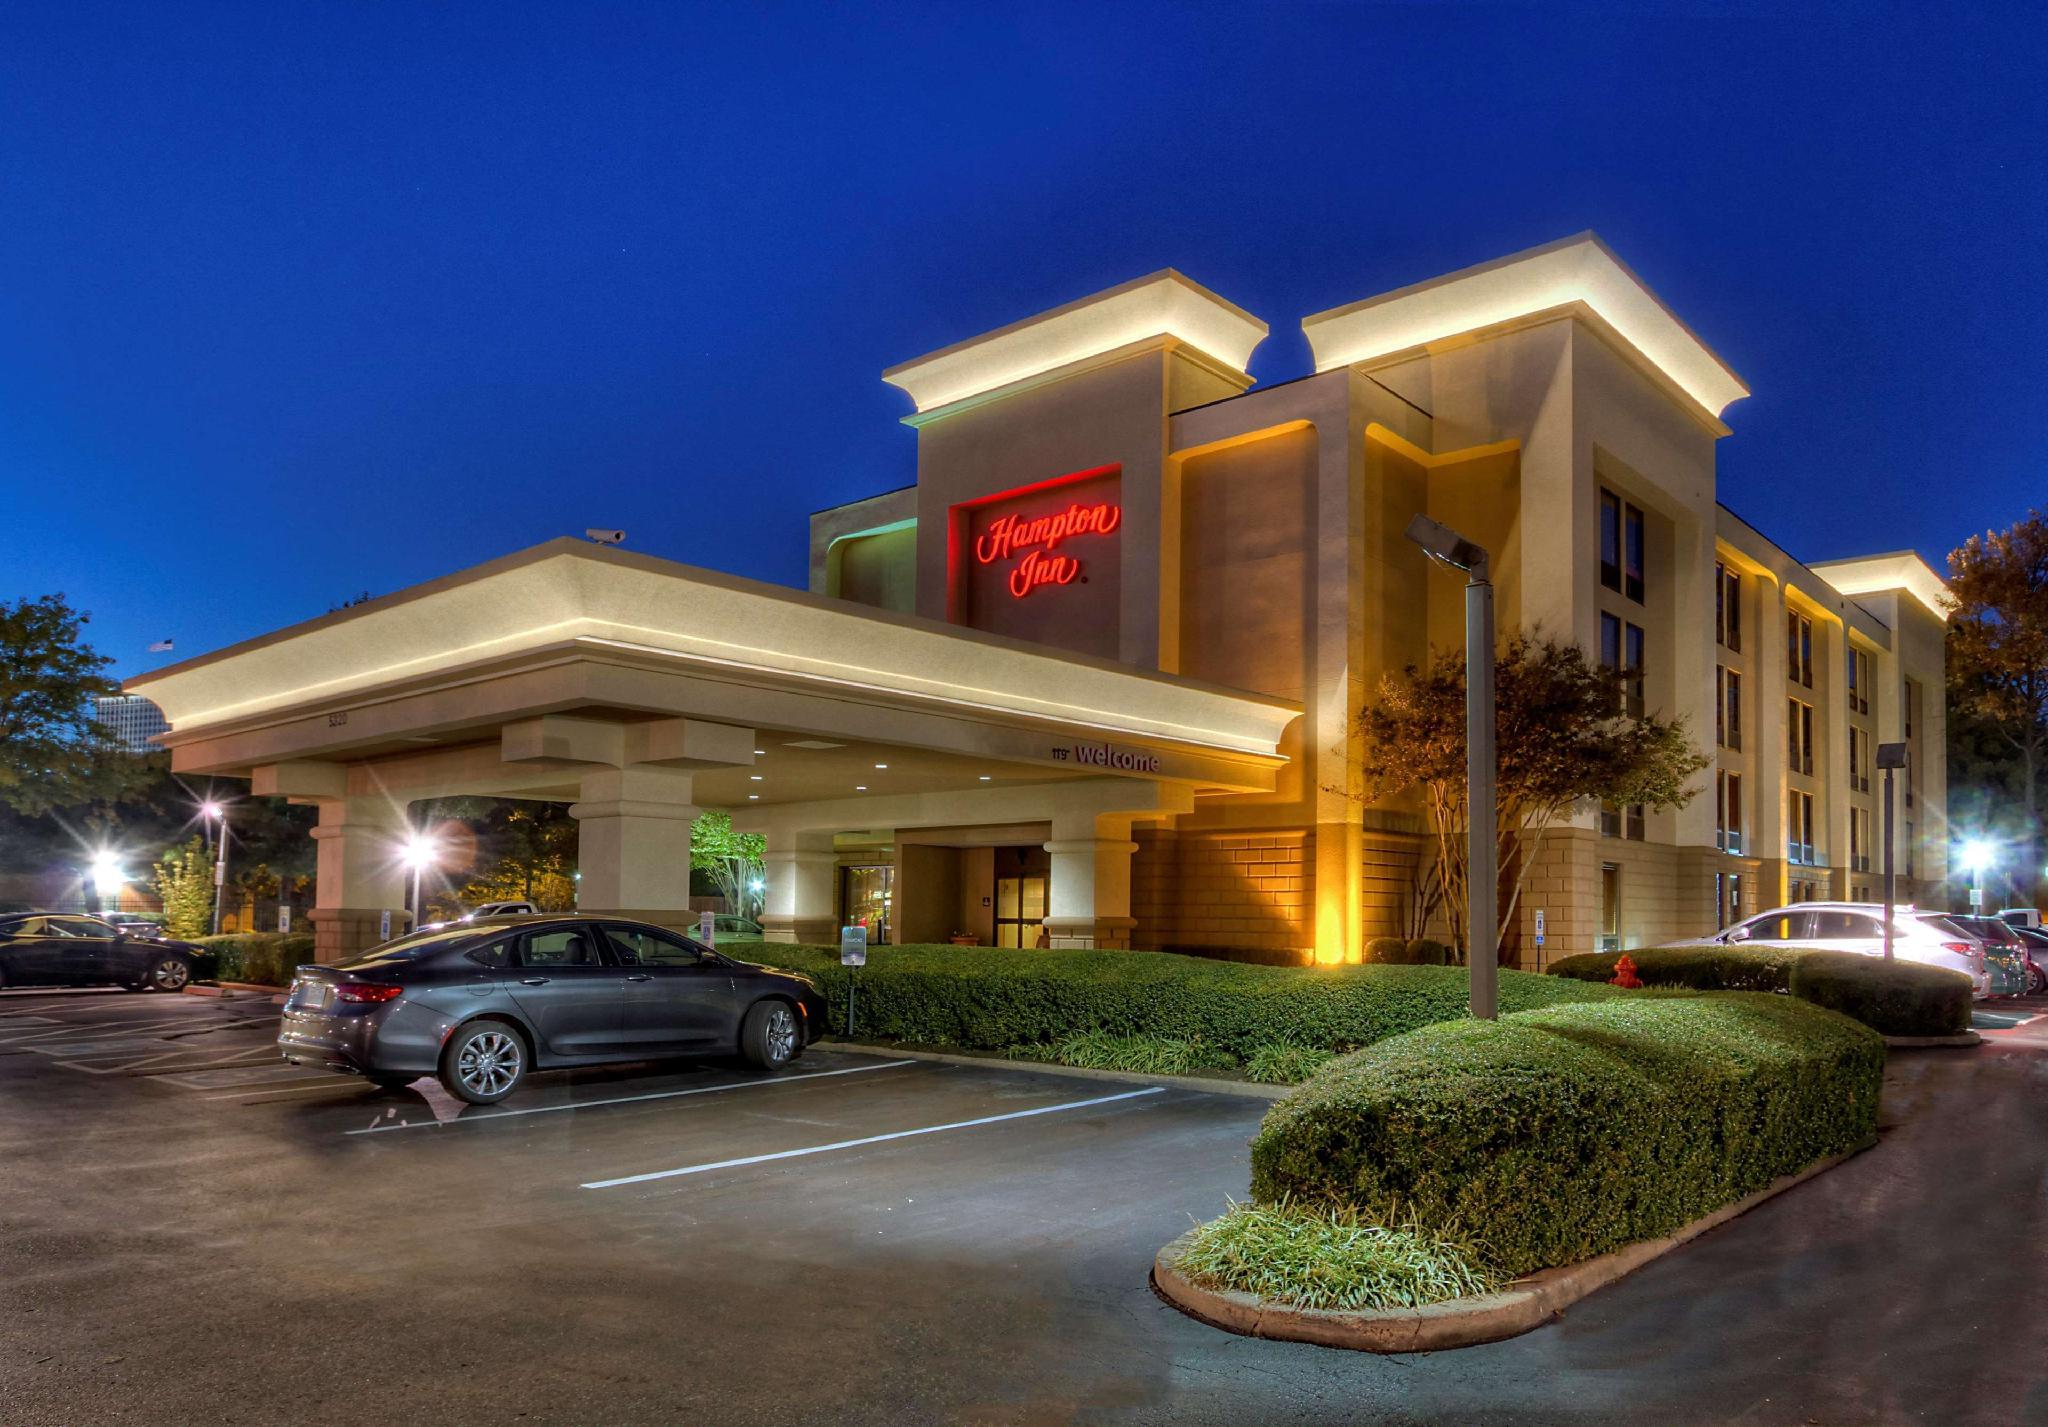 Hampton Inn Poplar, Shelby